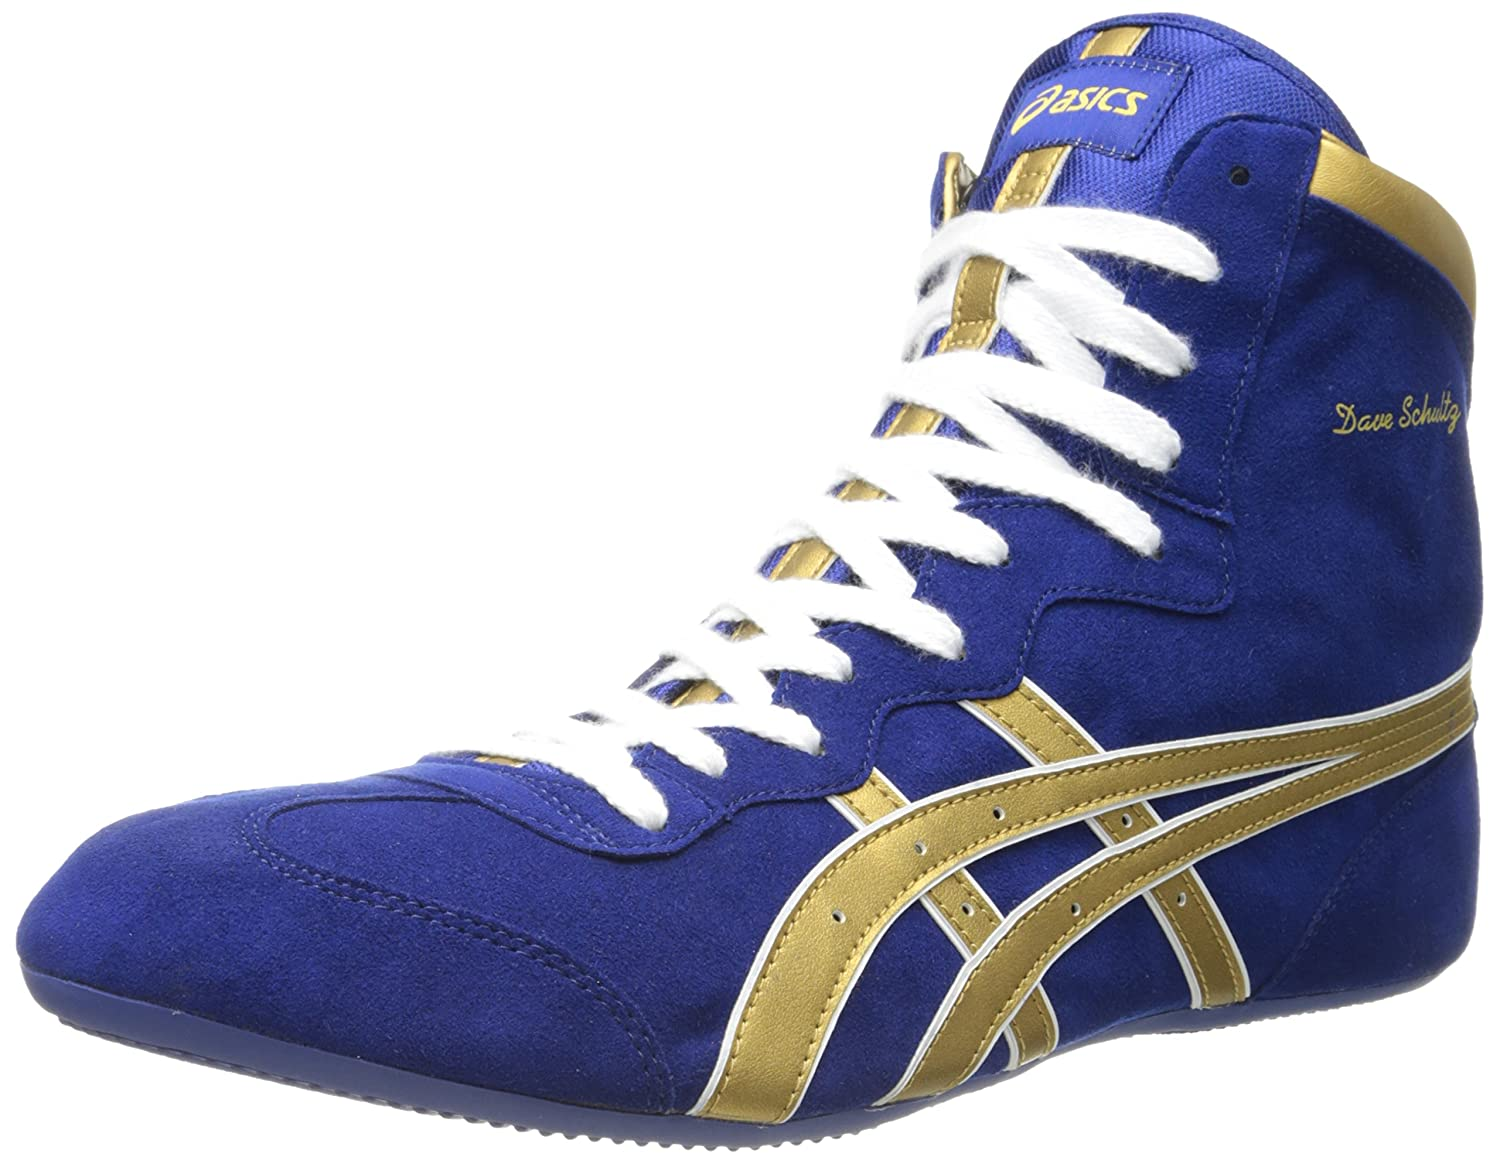 Asics Red Camo Wrestling Shoes Wrestling Shoe by Asics